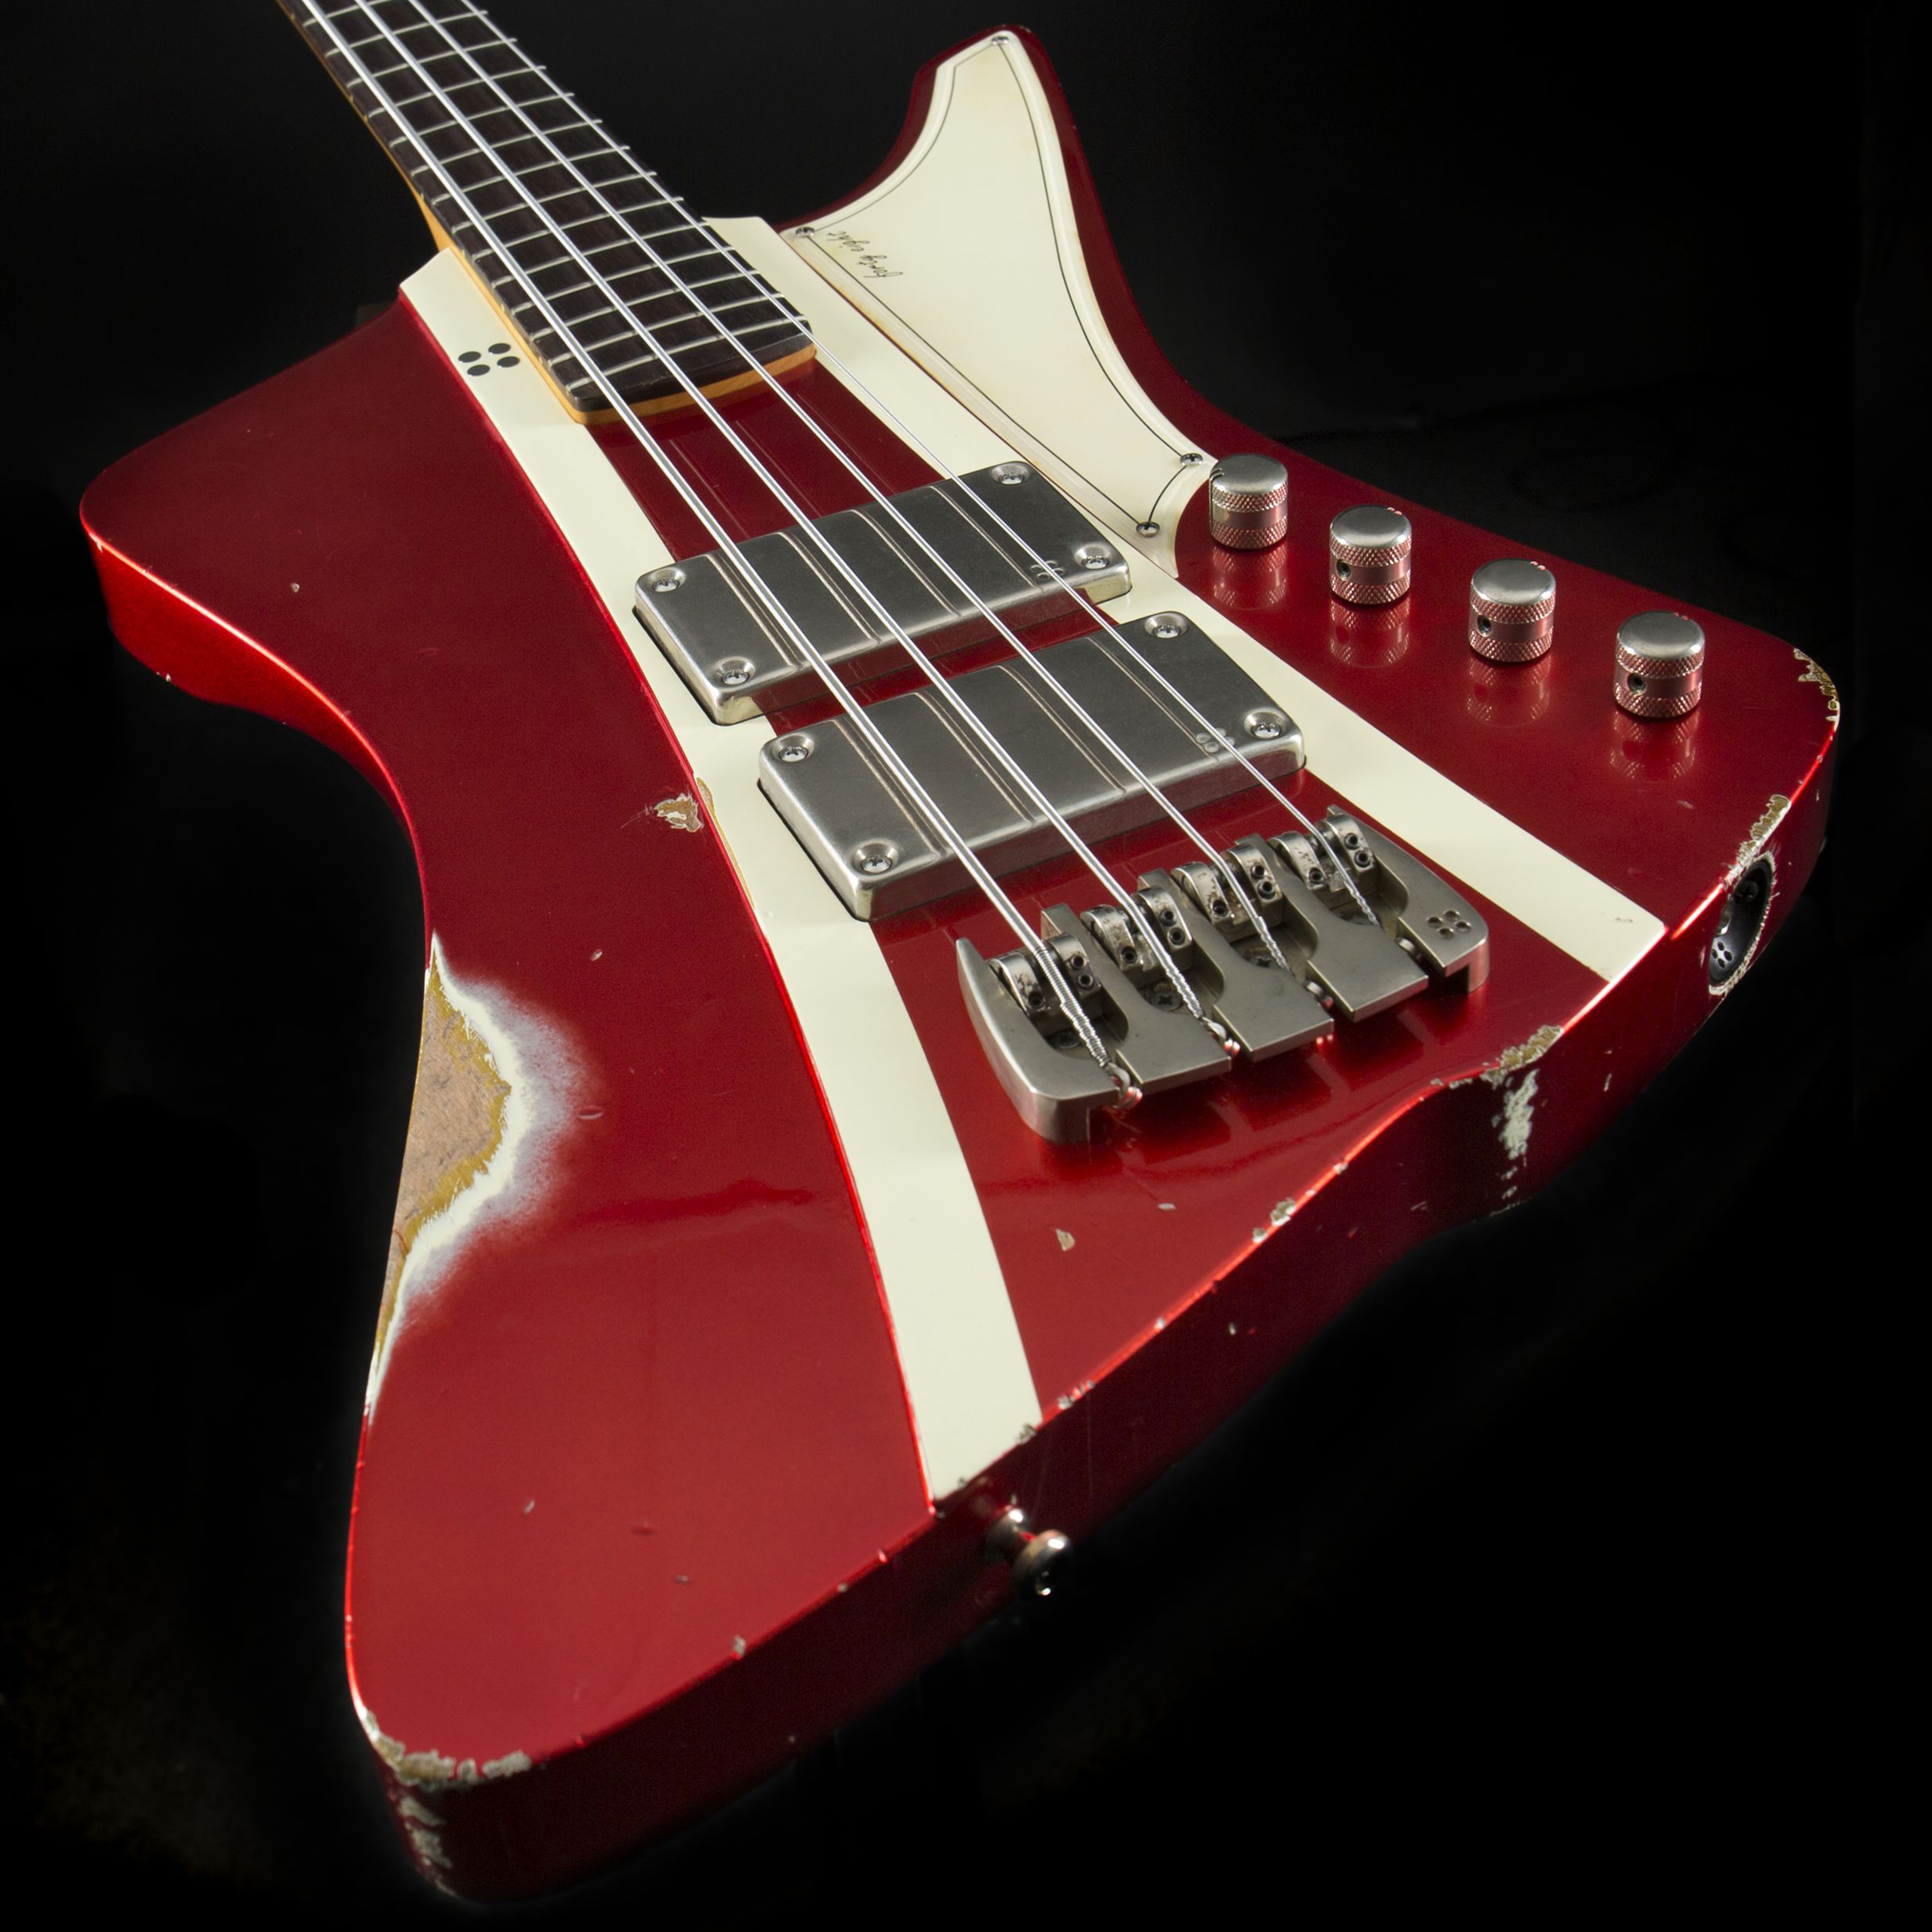 Sandberg Forty Eight 4 RW Metallic Red w/ Matching Headstock Hardcore Aged Korpus